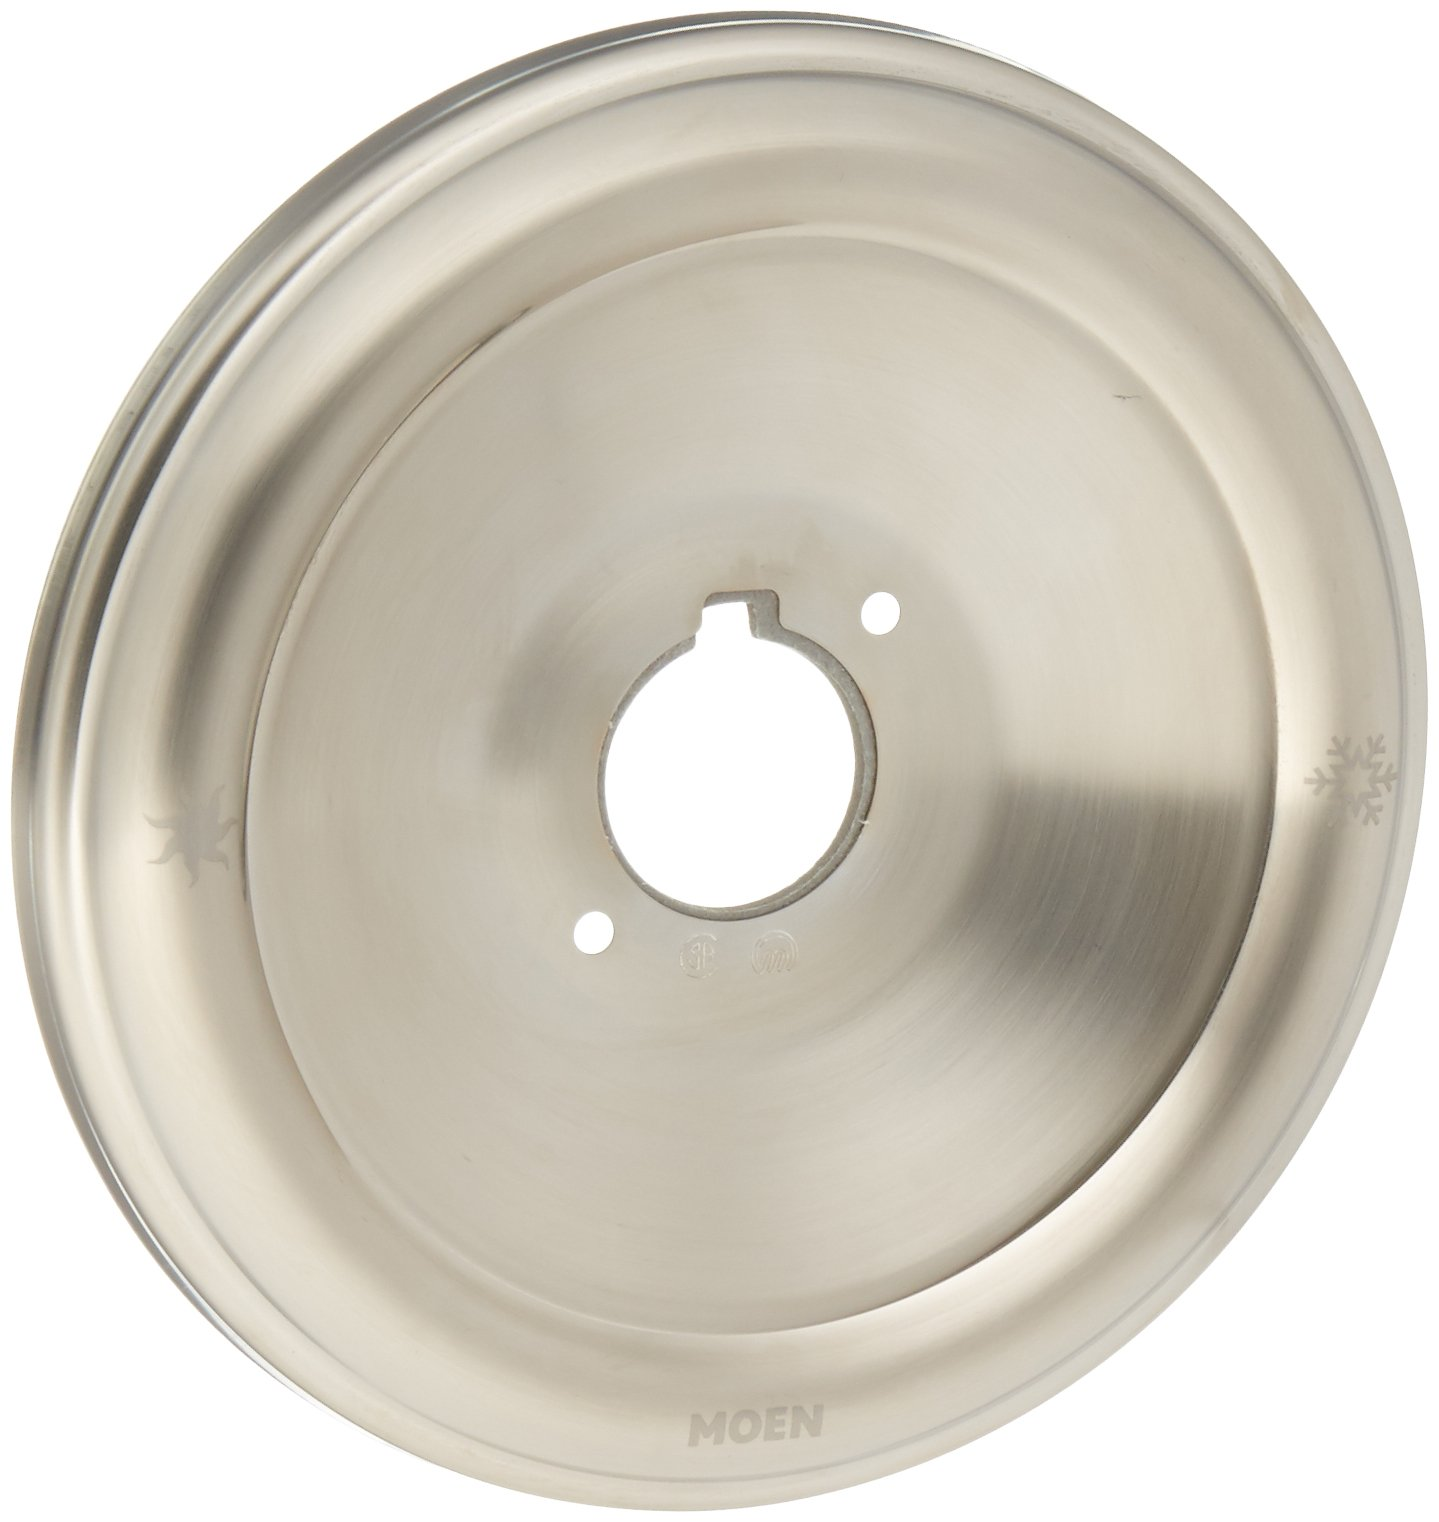 Moen 97491BN Escutcheon for Monticello Posi-Temp Single Handle Tub and Shower Faucets, Brushed Nickel